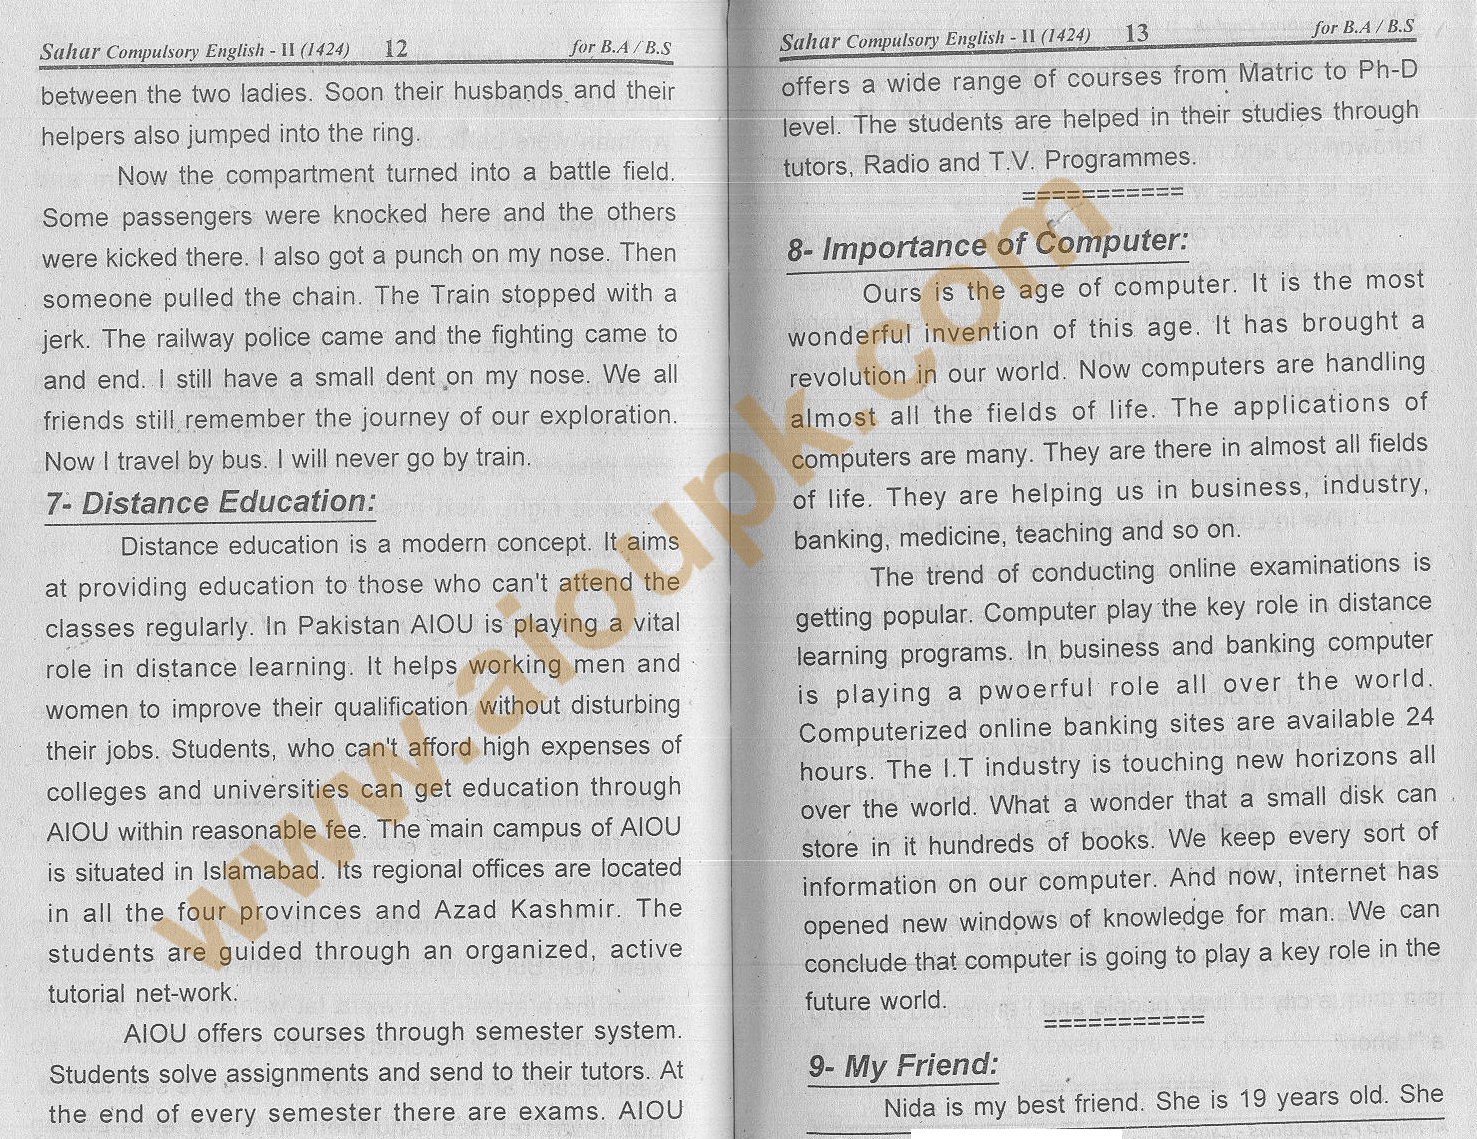 essay on books are our best friends for class 4 Http://quotesjunkcom/ life is not easy to live without friends when it comes to books, they can be our best friends ever good books enriches our mind with good thoughts and knowledge just like a good friend we cannot feel alone in the company of books we can learn many good things while reading a.